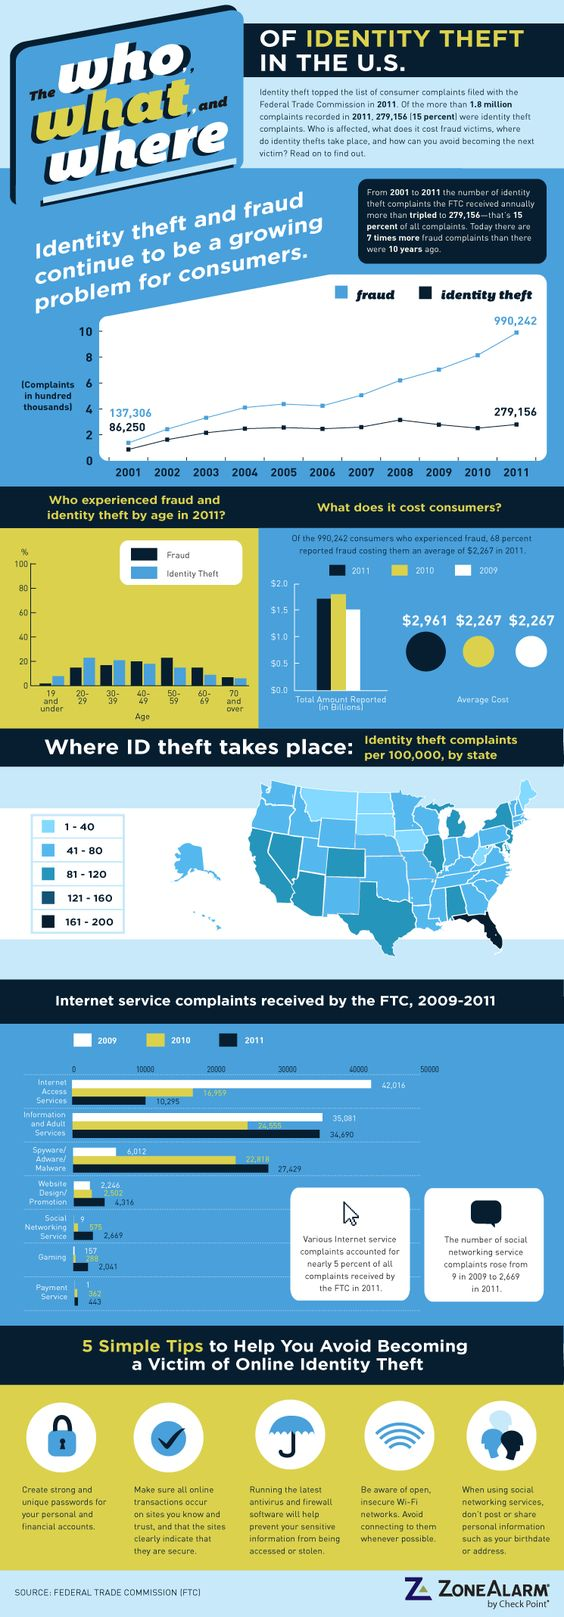 The who, what and where of identity theft in the US via techrepublic.com. The FTC estimates 9 million people in the US are victims of identity theft each year.